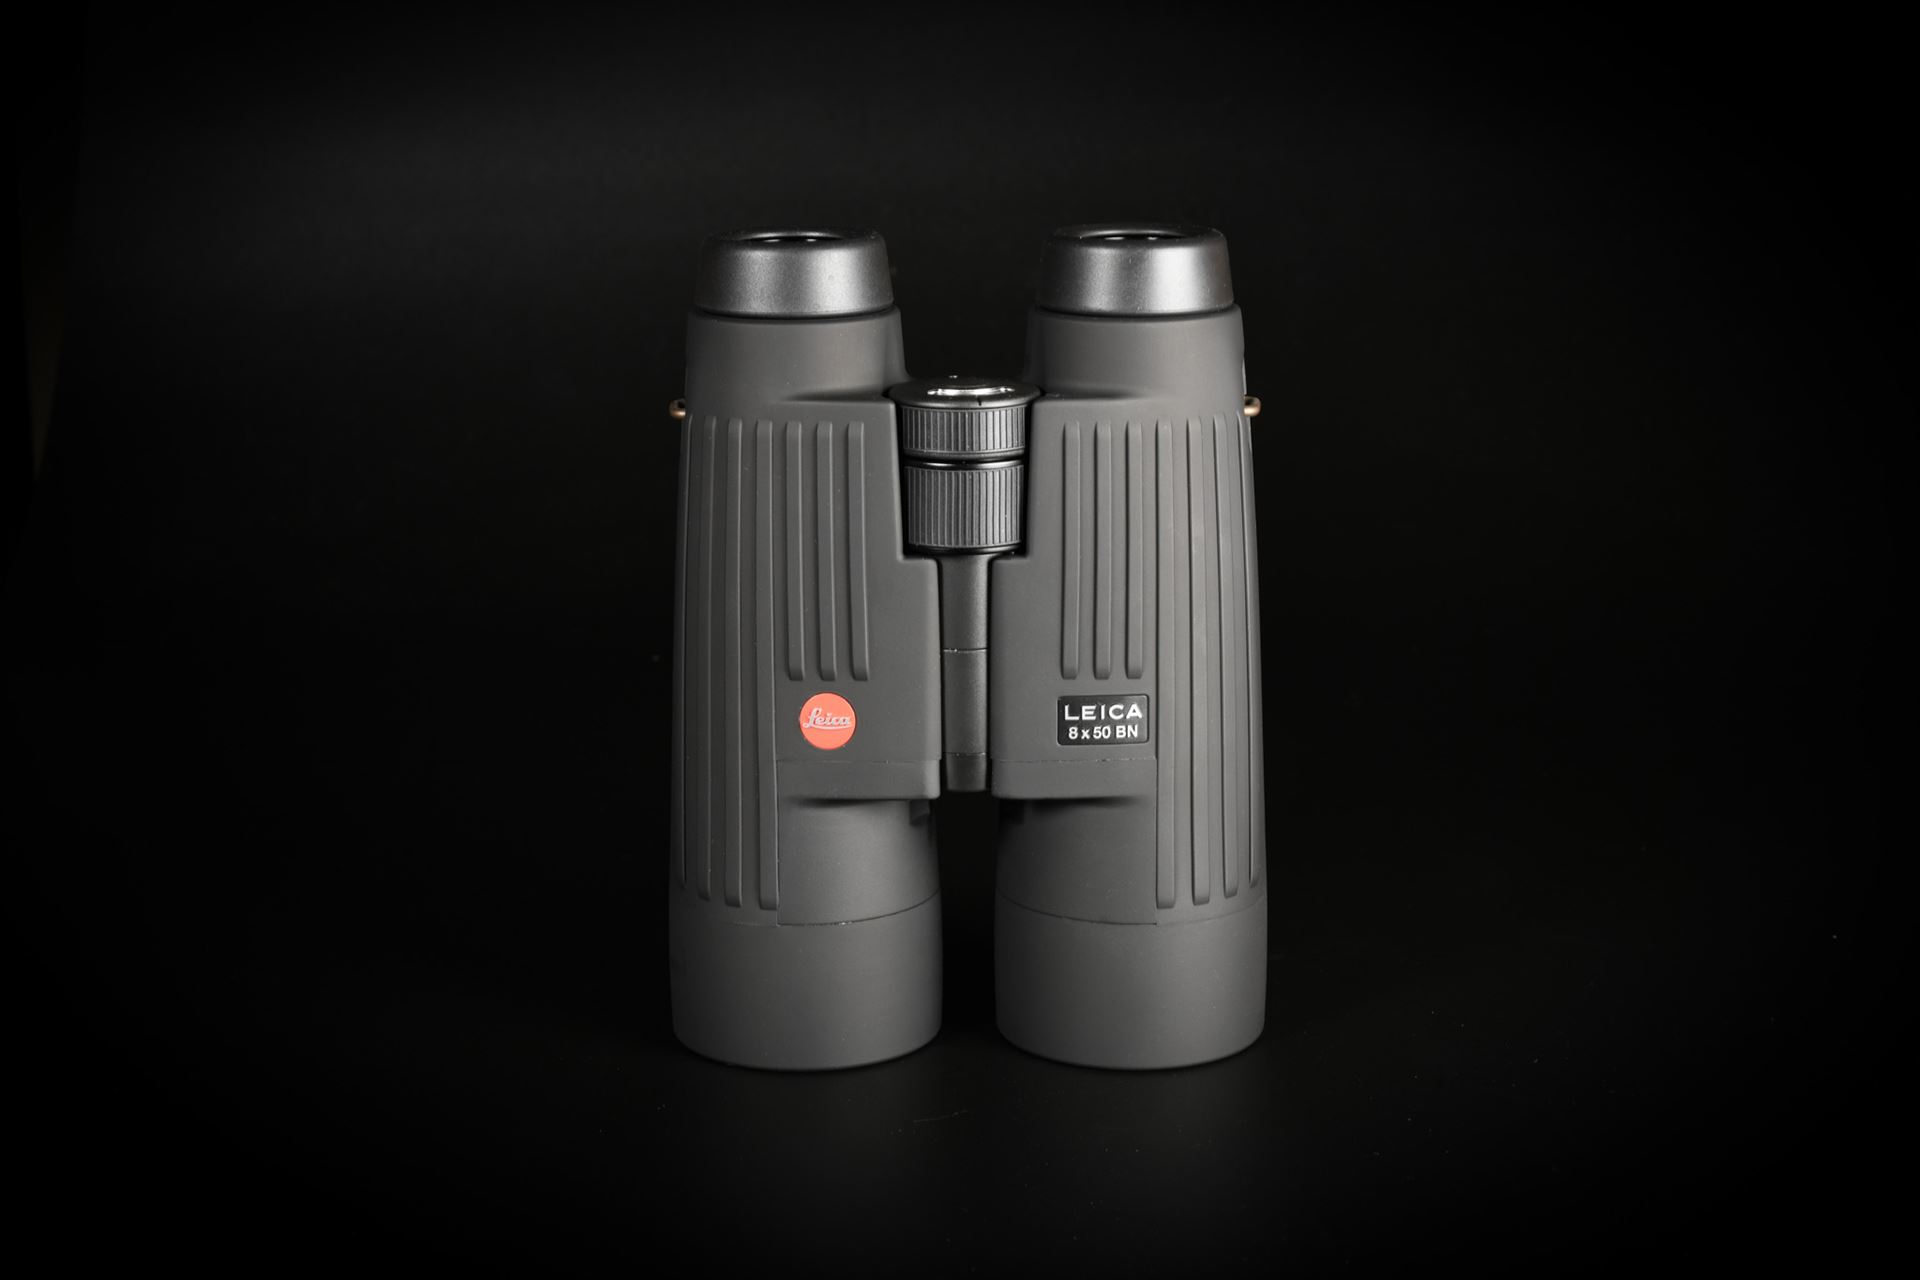 Picture of Leica Trinovid 8x50 BN Black